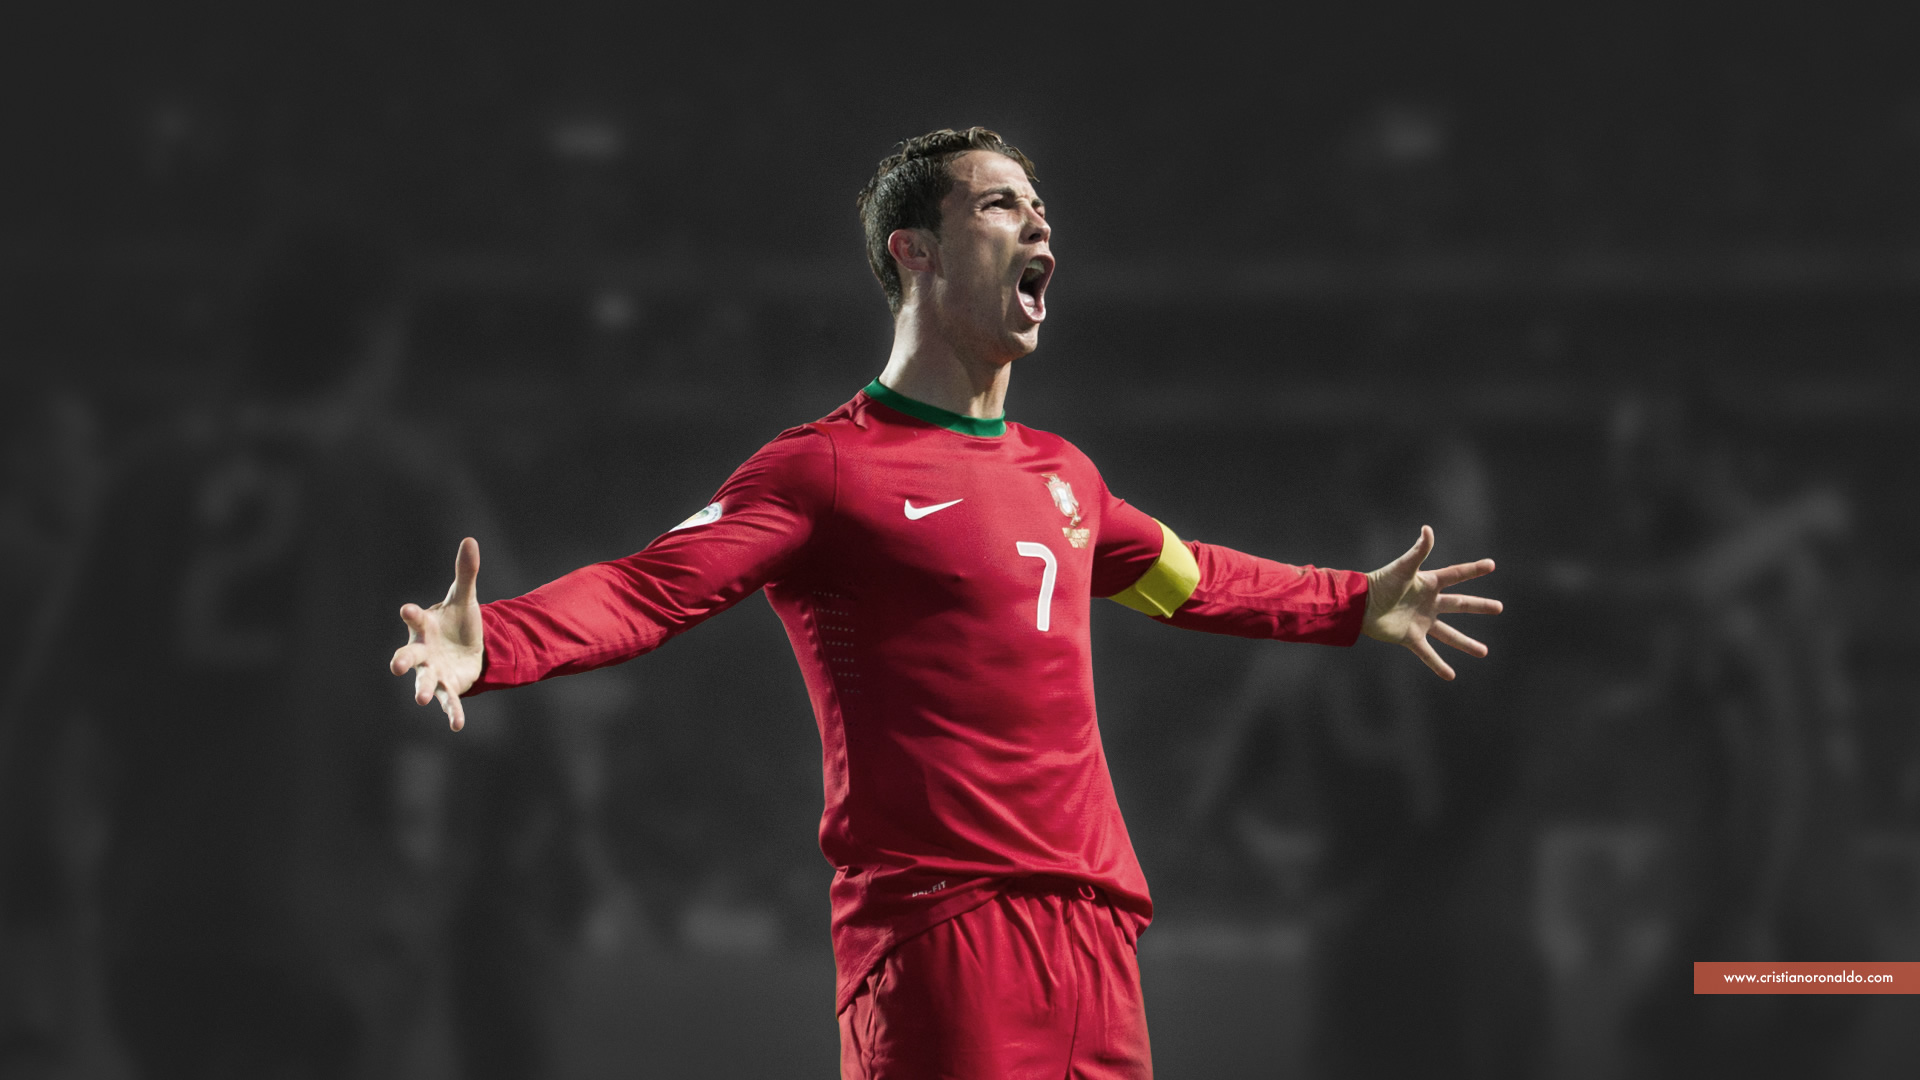 Cristiano Ronaldo Screaming Wallpaper